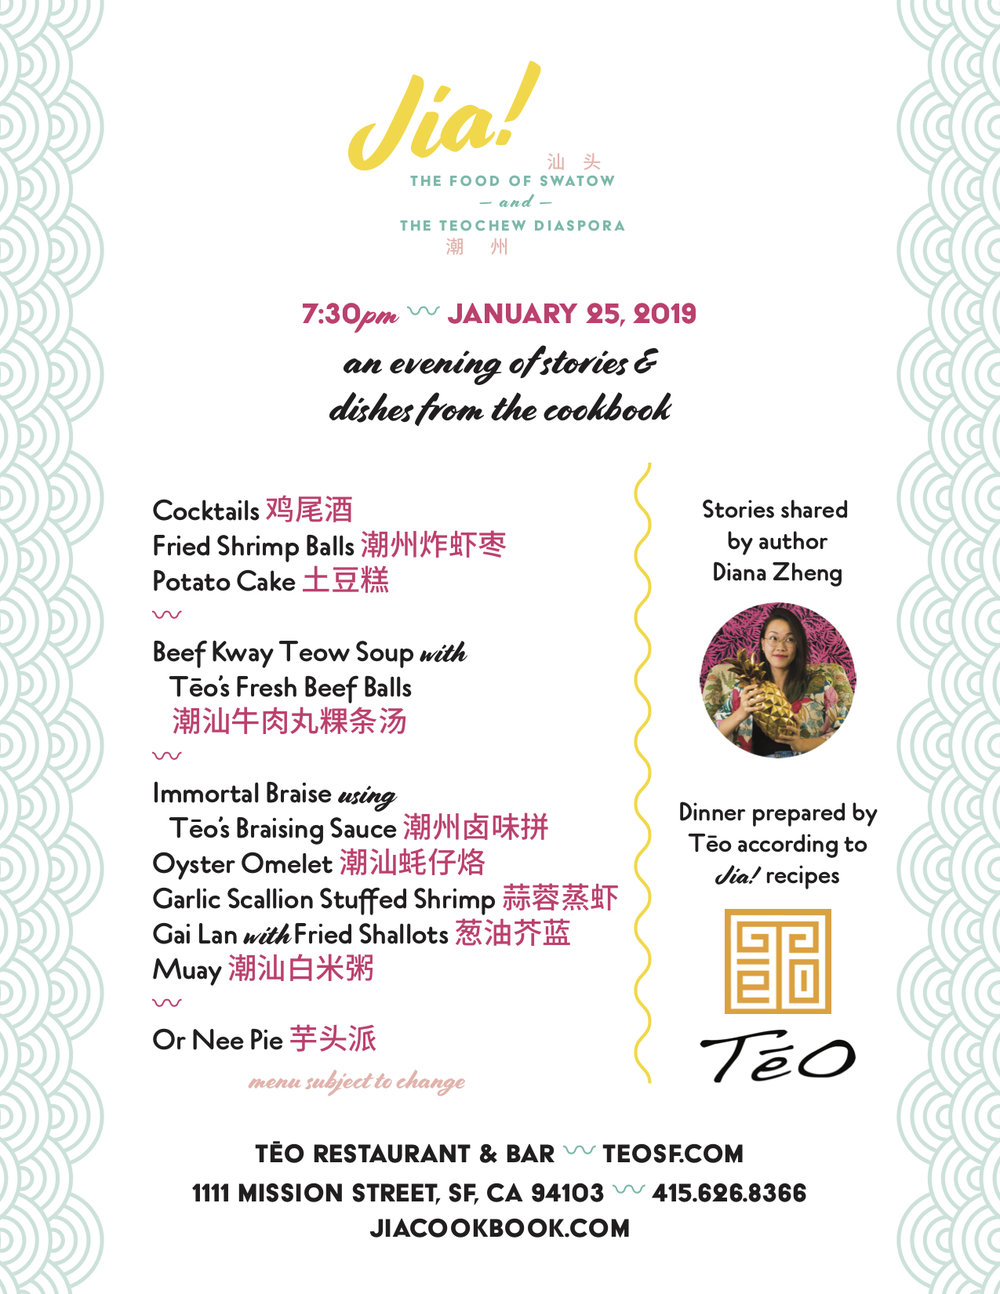 Jia x Teo dinner menu.jpg